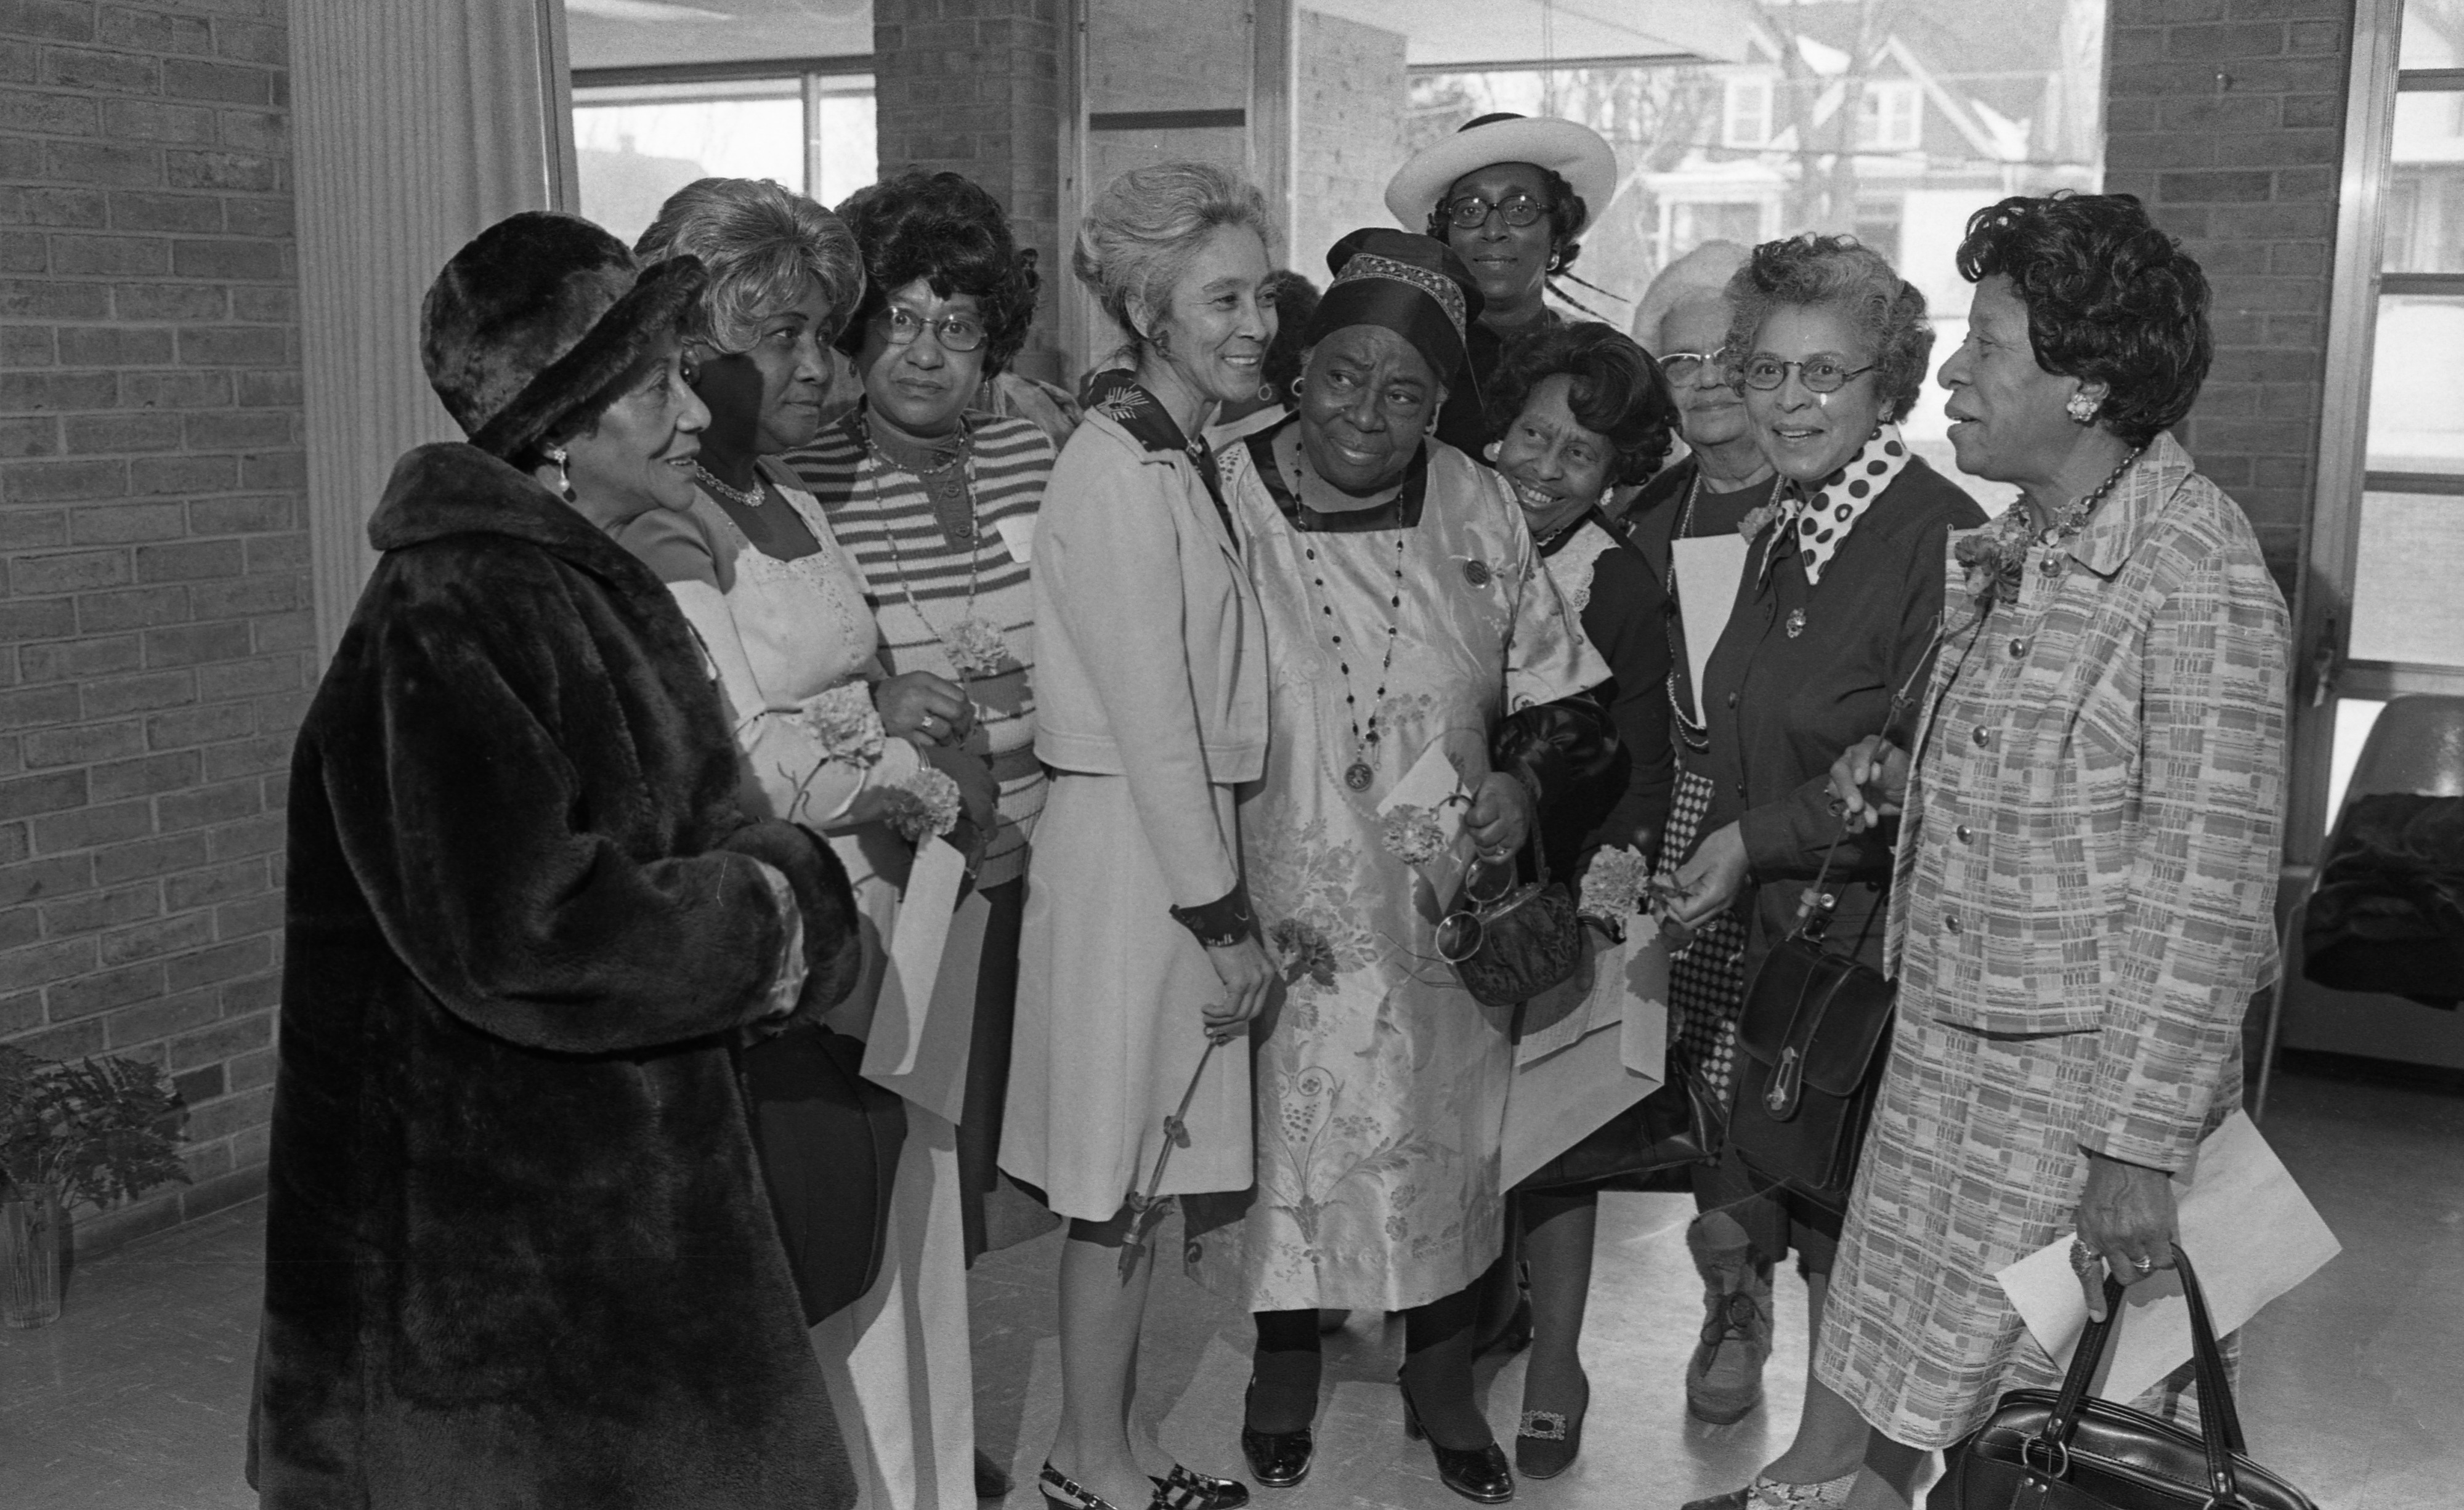 National Council of Negro Women Local Chapter Honors Black Women In Community, February 1976 image